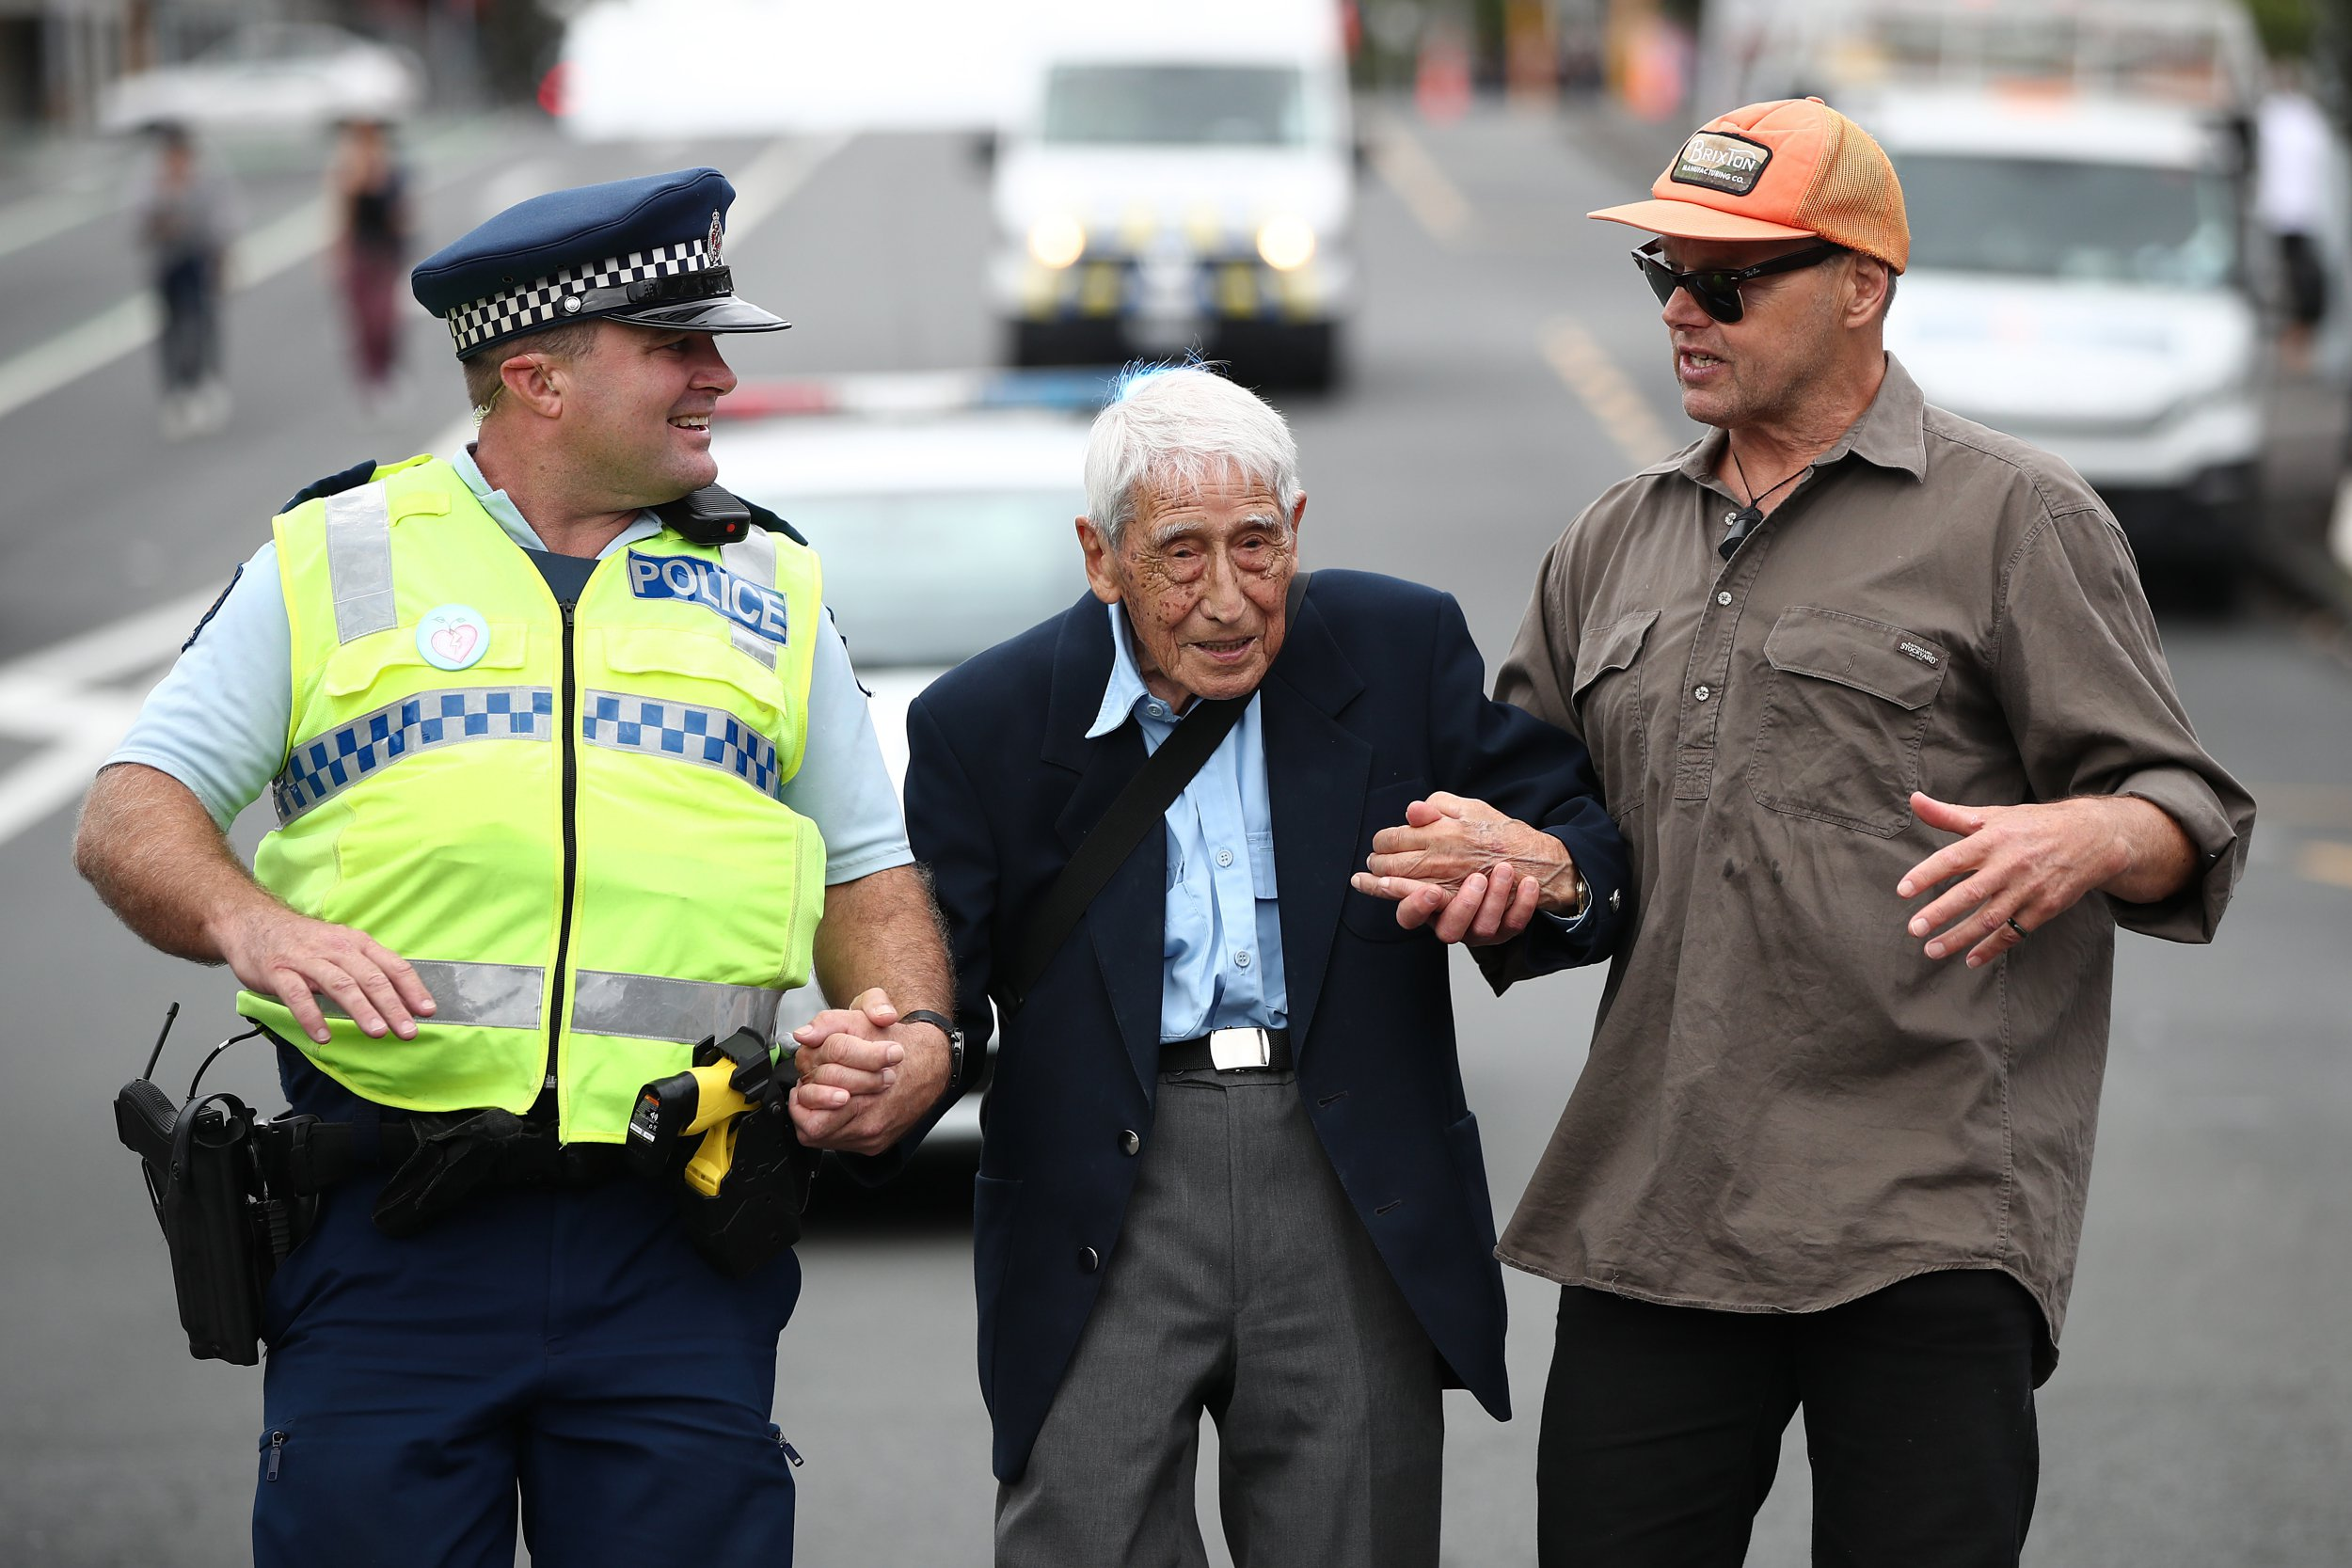 AUCKLAND, NEW ZEALAND - MARCH 24: John Sato (C) 95, one of only two Japanese servicemen in the New Zealand army in WWII, took two buses from Howick to join the march against racism at Aotea Square on March 24, 2019 in Auckland, New Zealand. 50 people were killed, and dozens were injured in Christchurch on Friday, March 15 when a gunman opened fire at the Al Noor and Linwood mosques. The attack is the worst mass shooting in New Zealand's history. (Photo by Fiona Goodall/Getty Images)